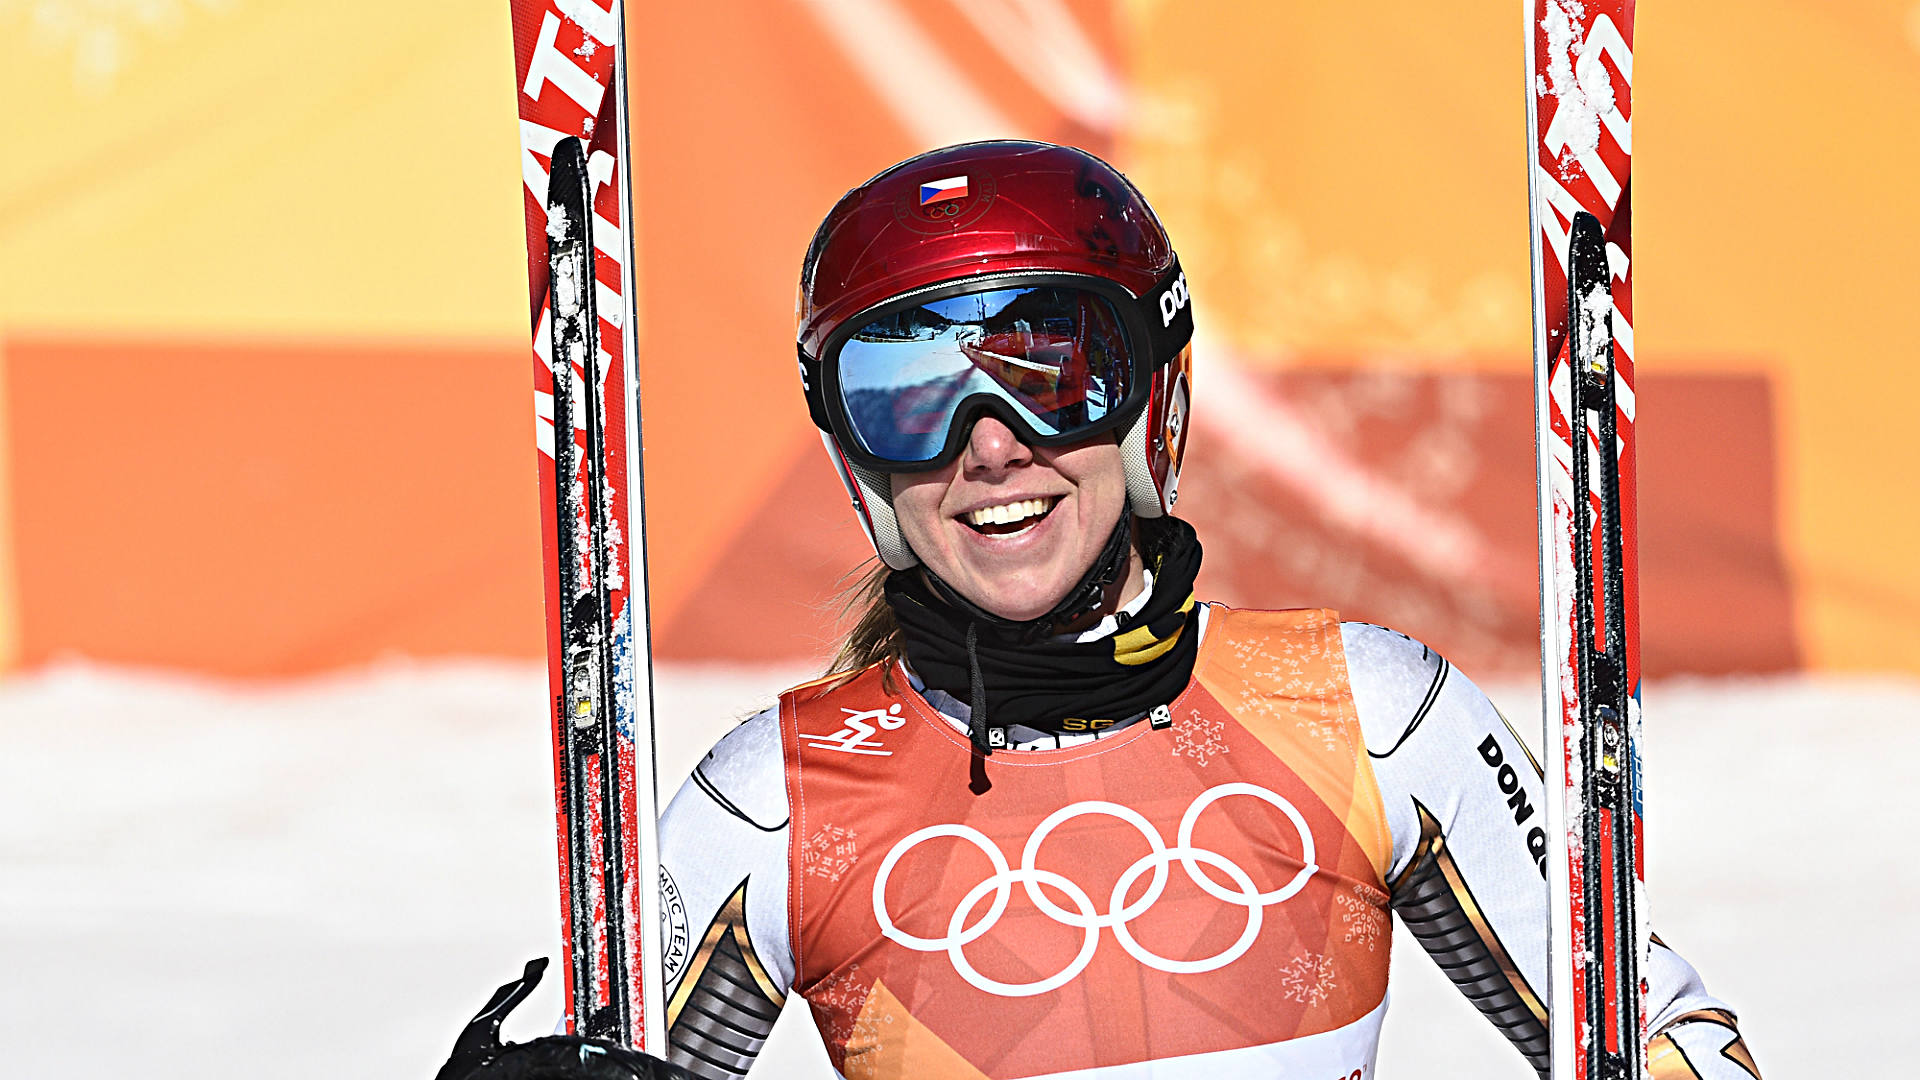 Shock ski gold plays havoc with Ledecka's day